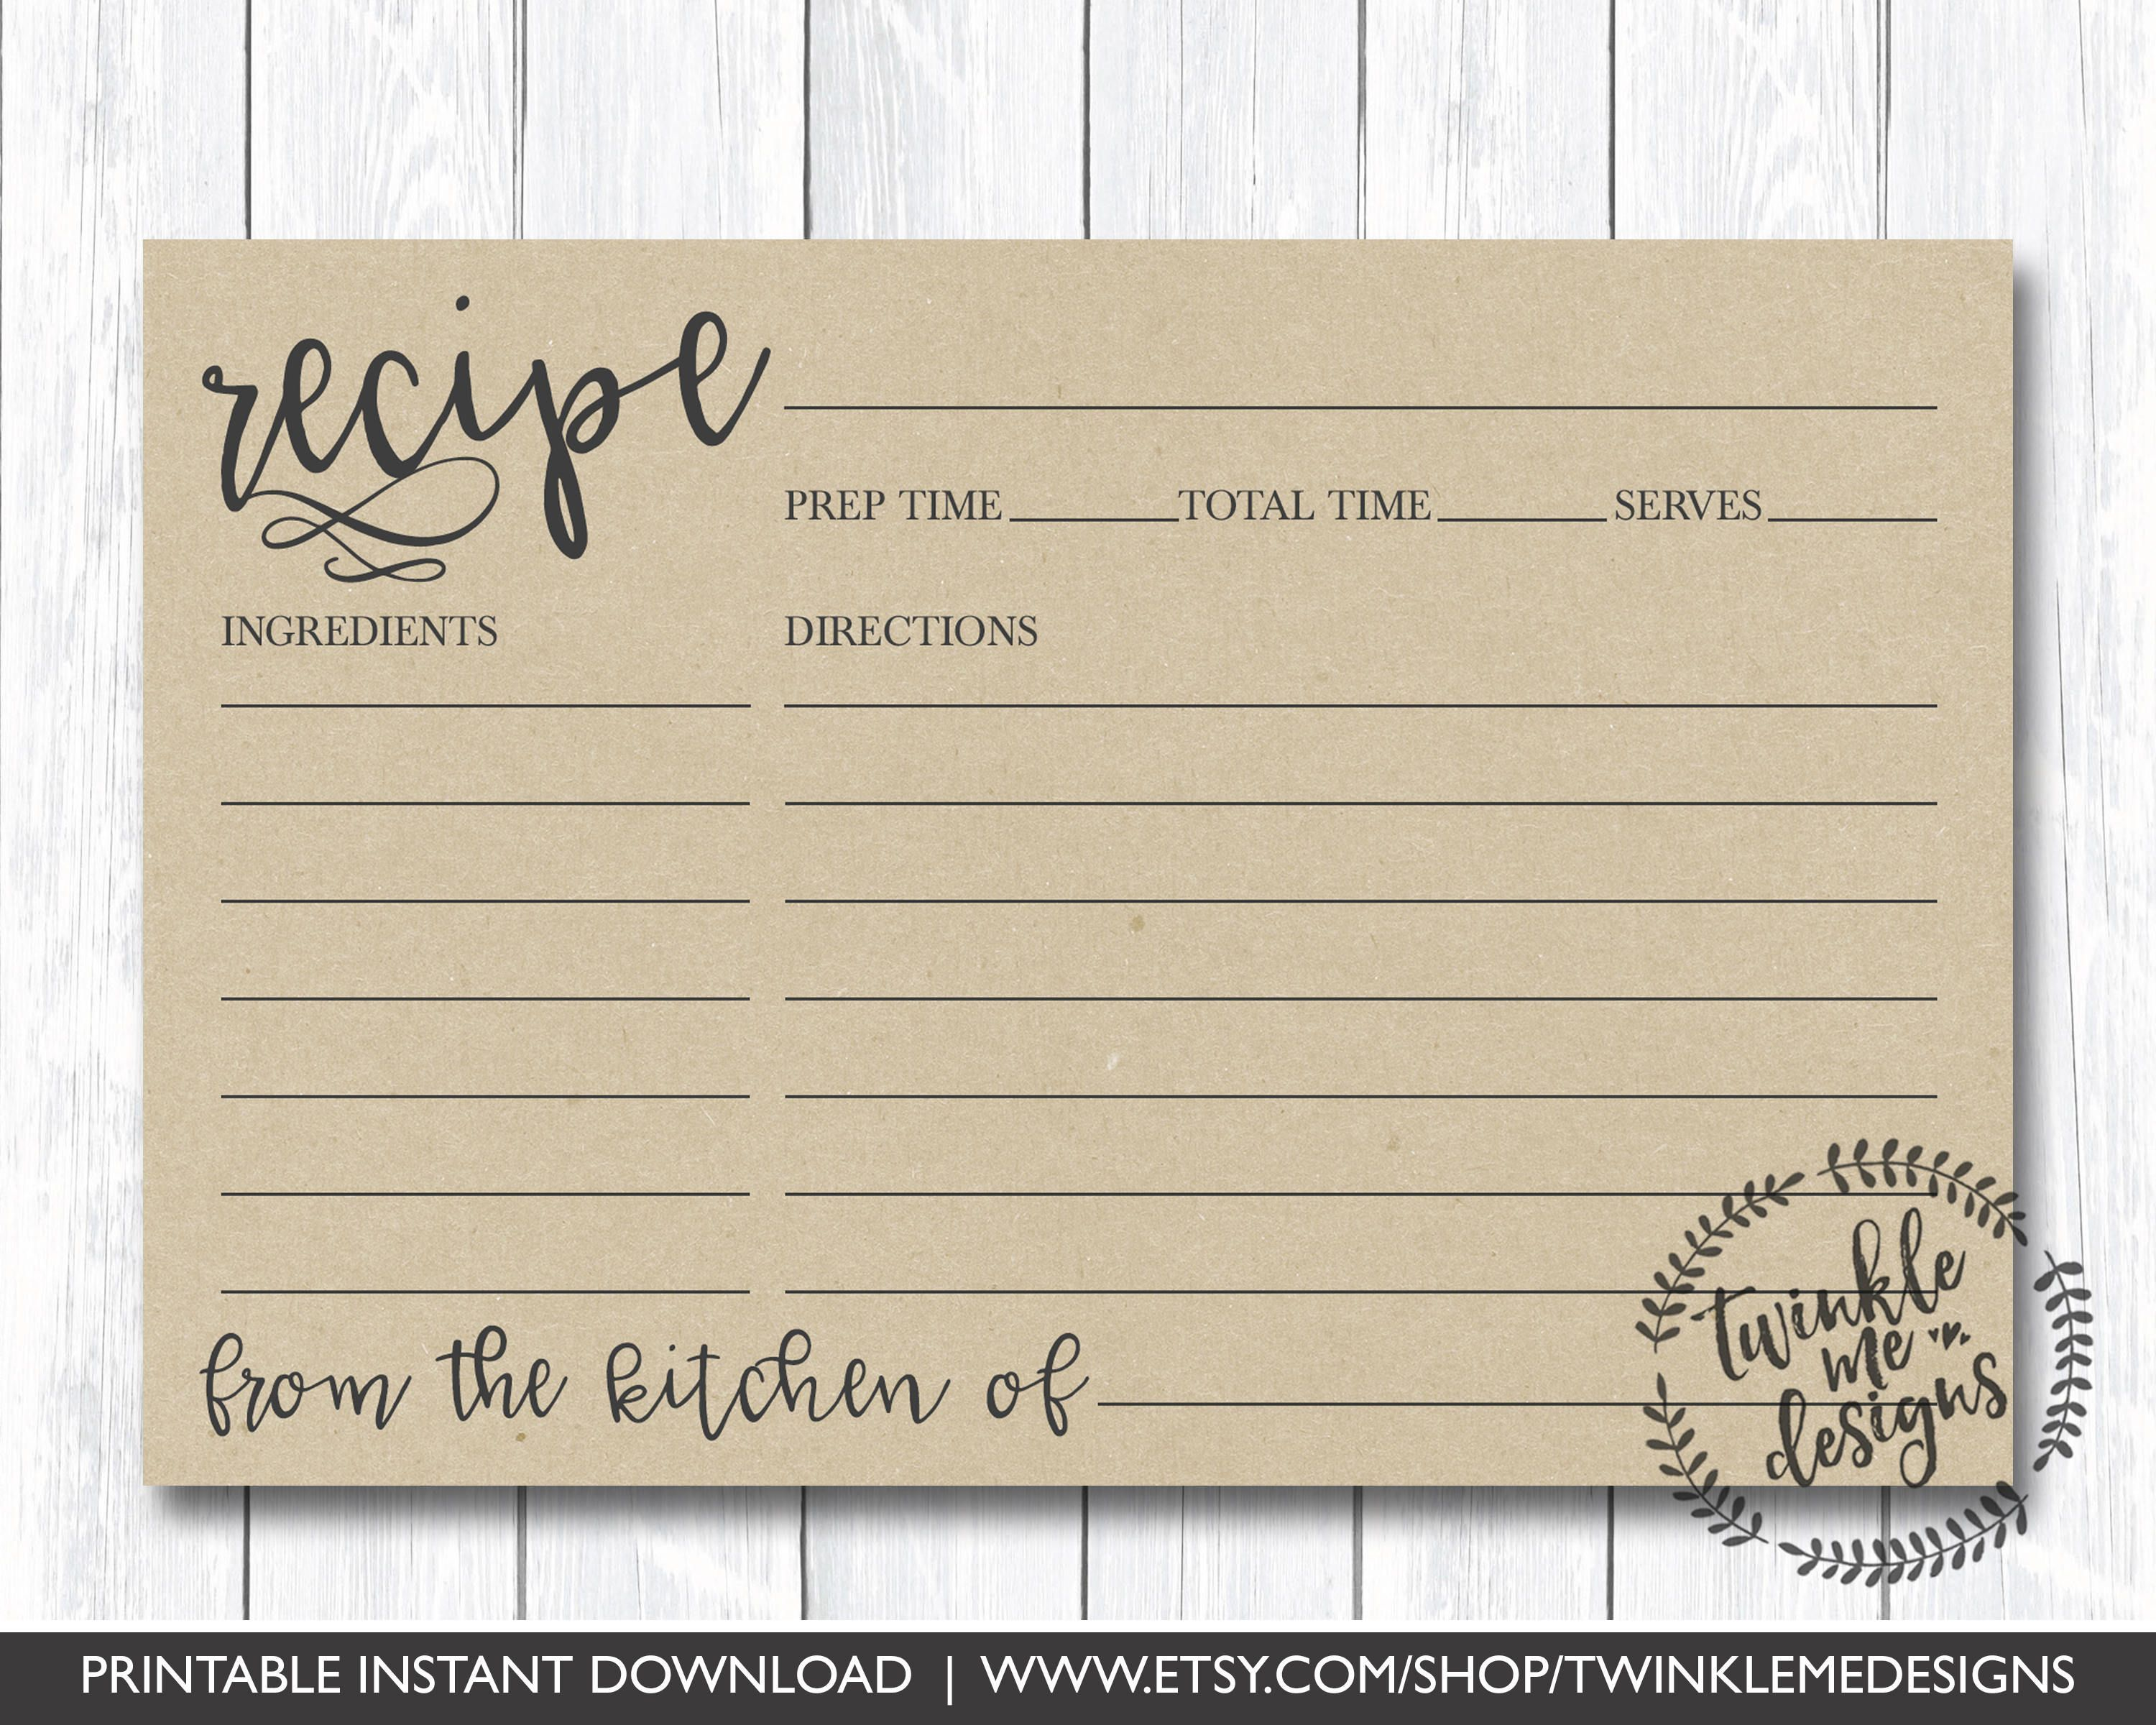 graphic regarding Free Printable Recipe Cards for Bridal Shower titled Recipe Card Printable, Printable Recipe Card, Do-it-yourself Recipe